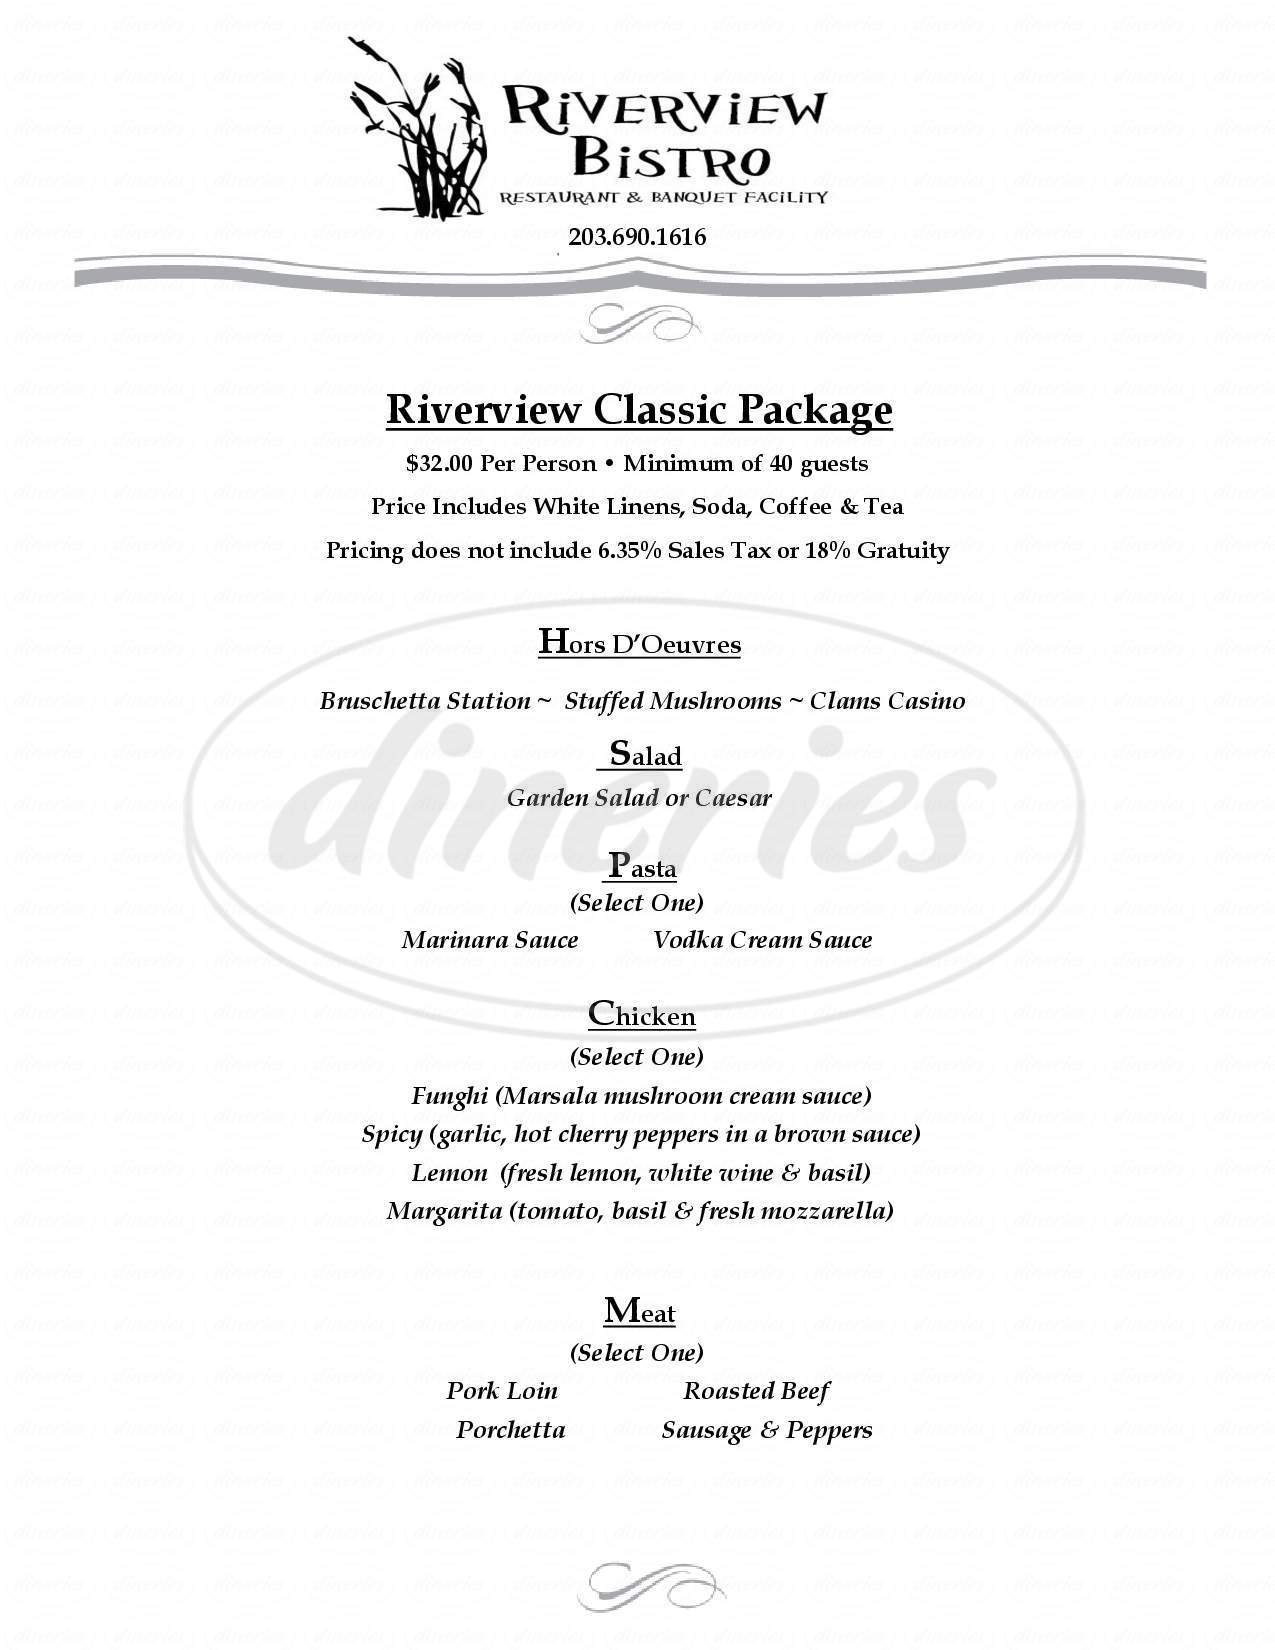 menu for Riverview Bistro